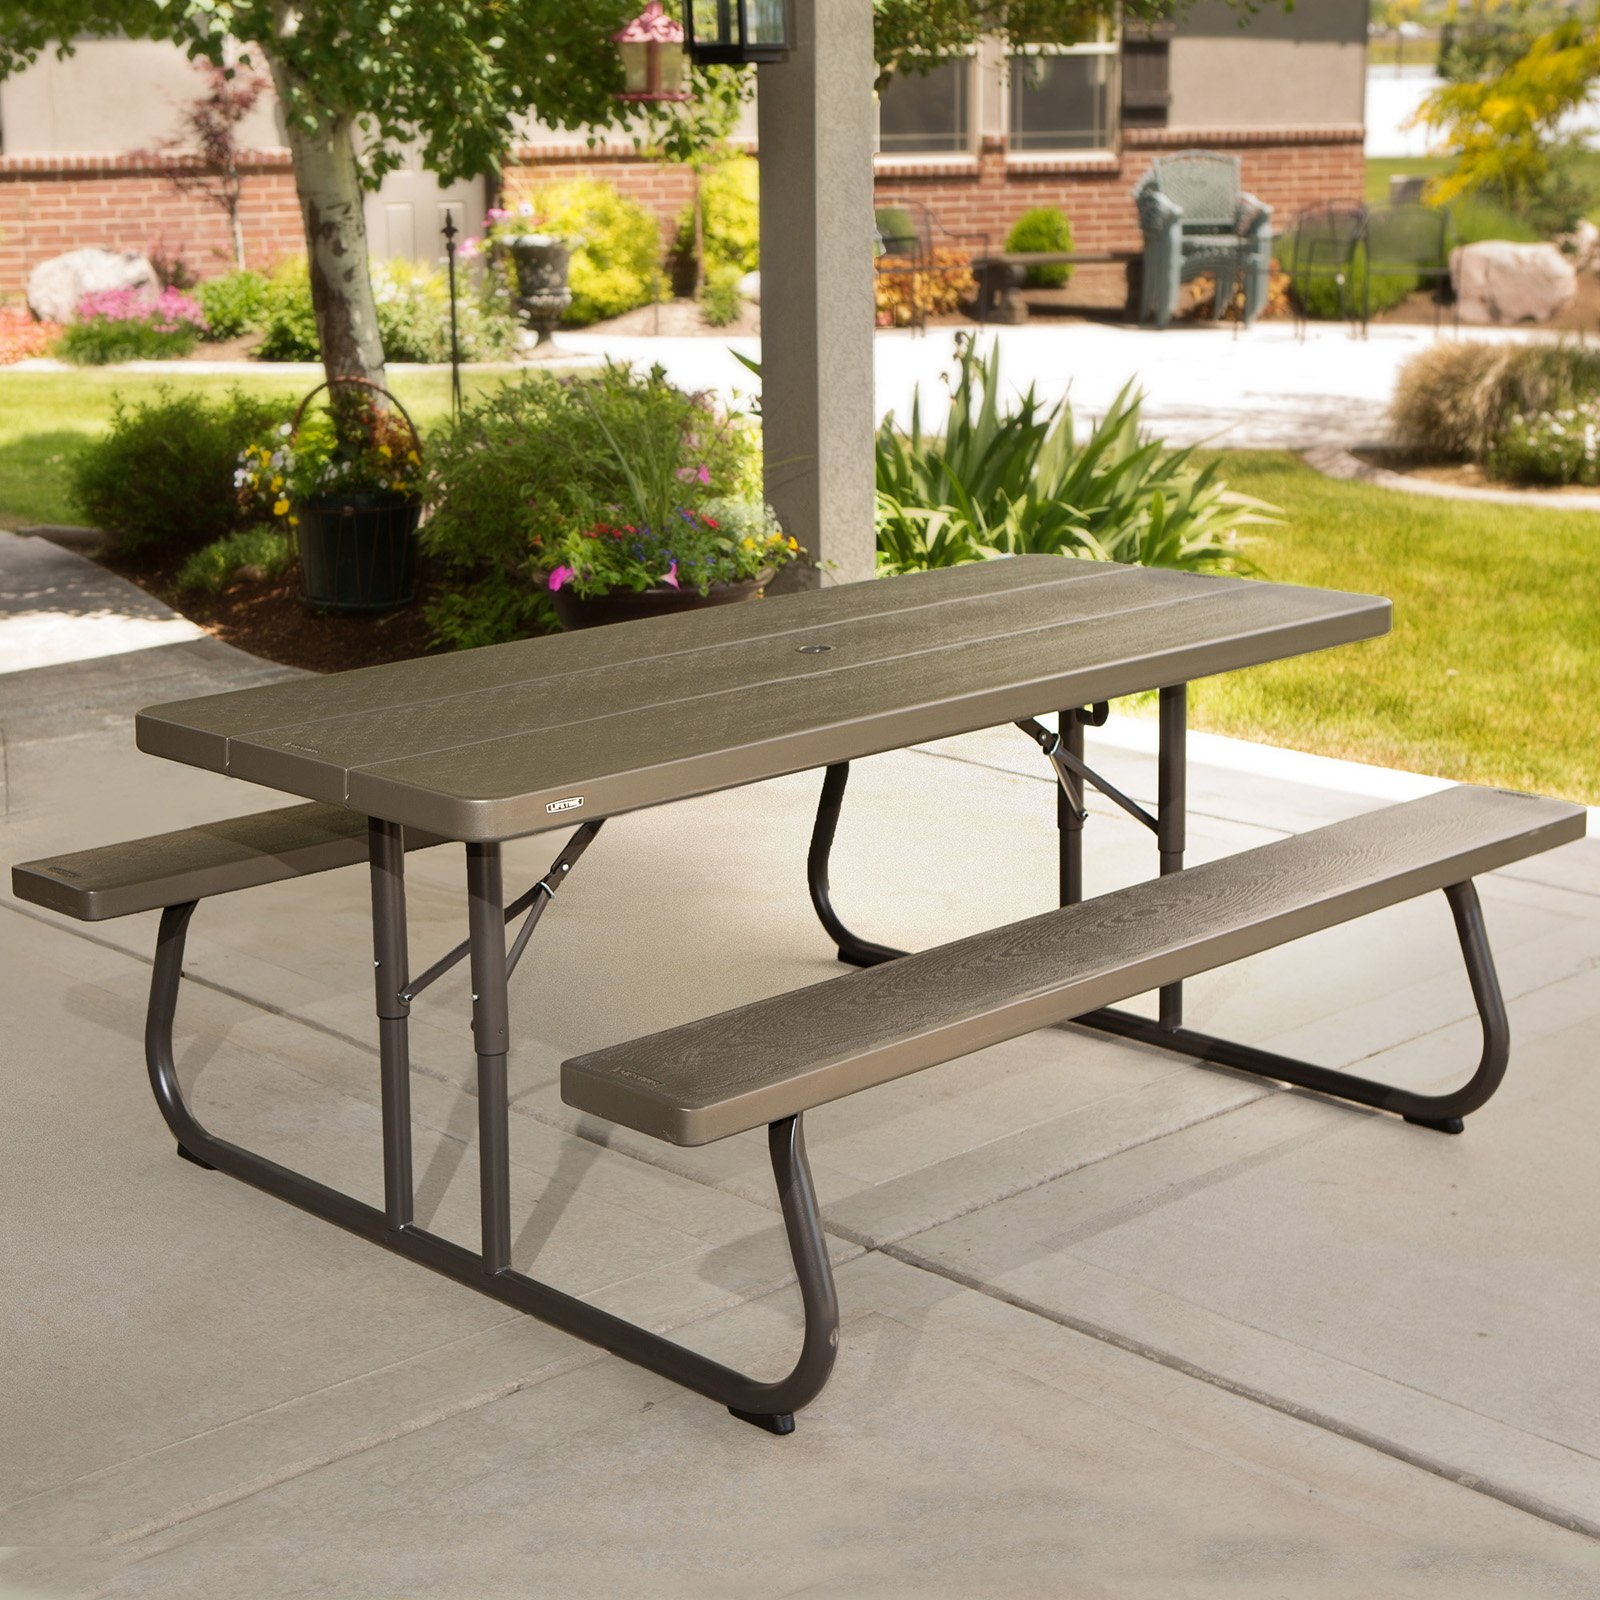 Picnic Decor Lifetime 6 Foot Picnic Table Brown 60105